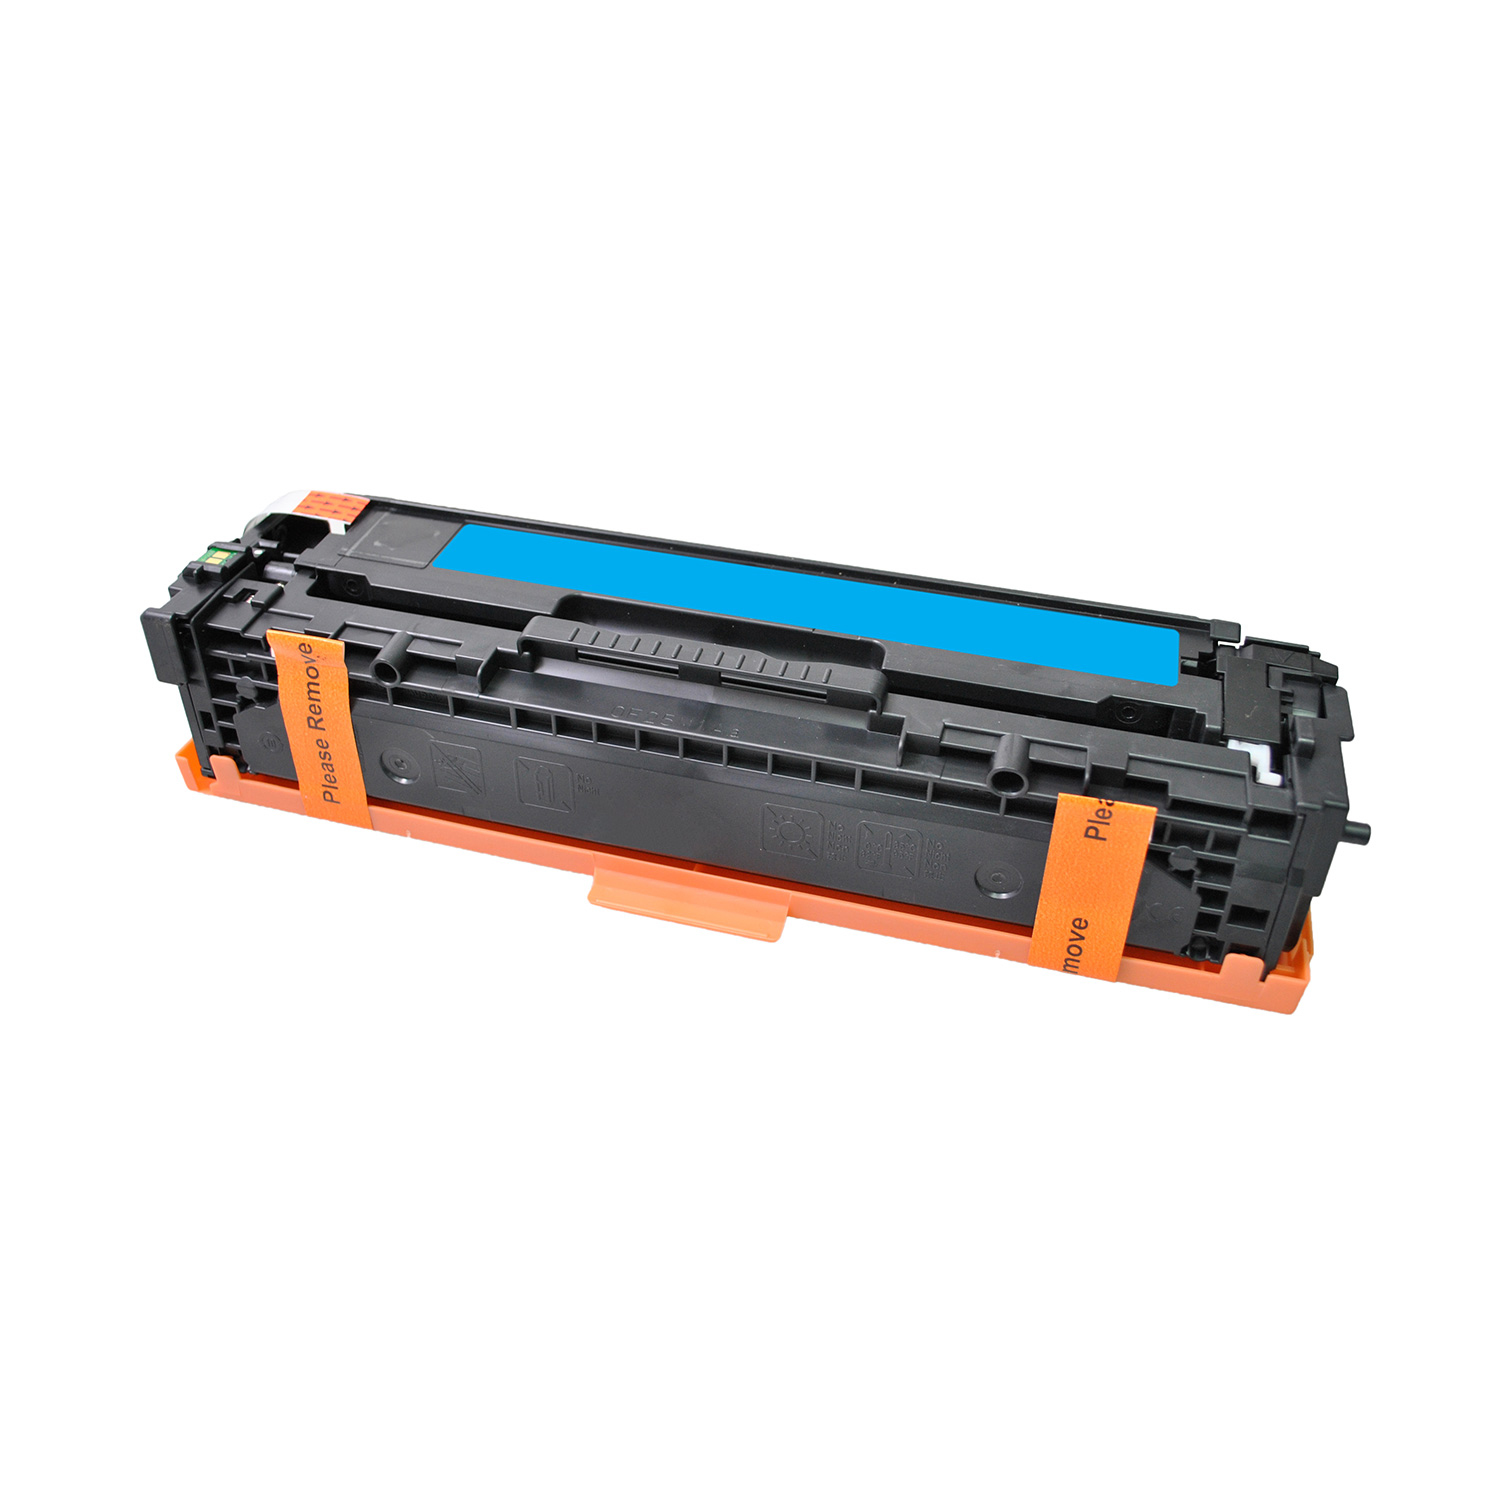 Tonner For Printer V7 Laser Toner For Select Canon Printer Replaces 716 C